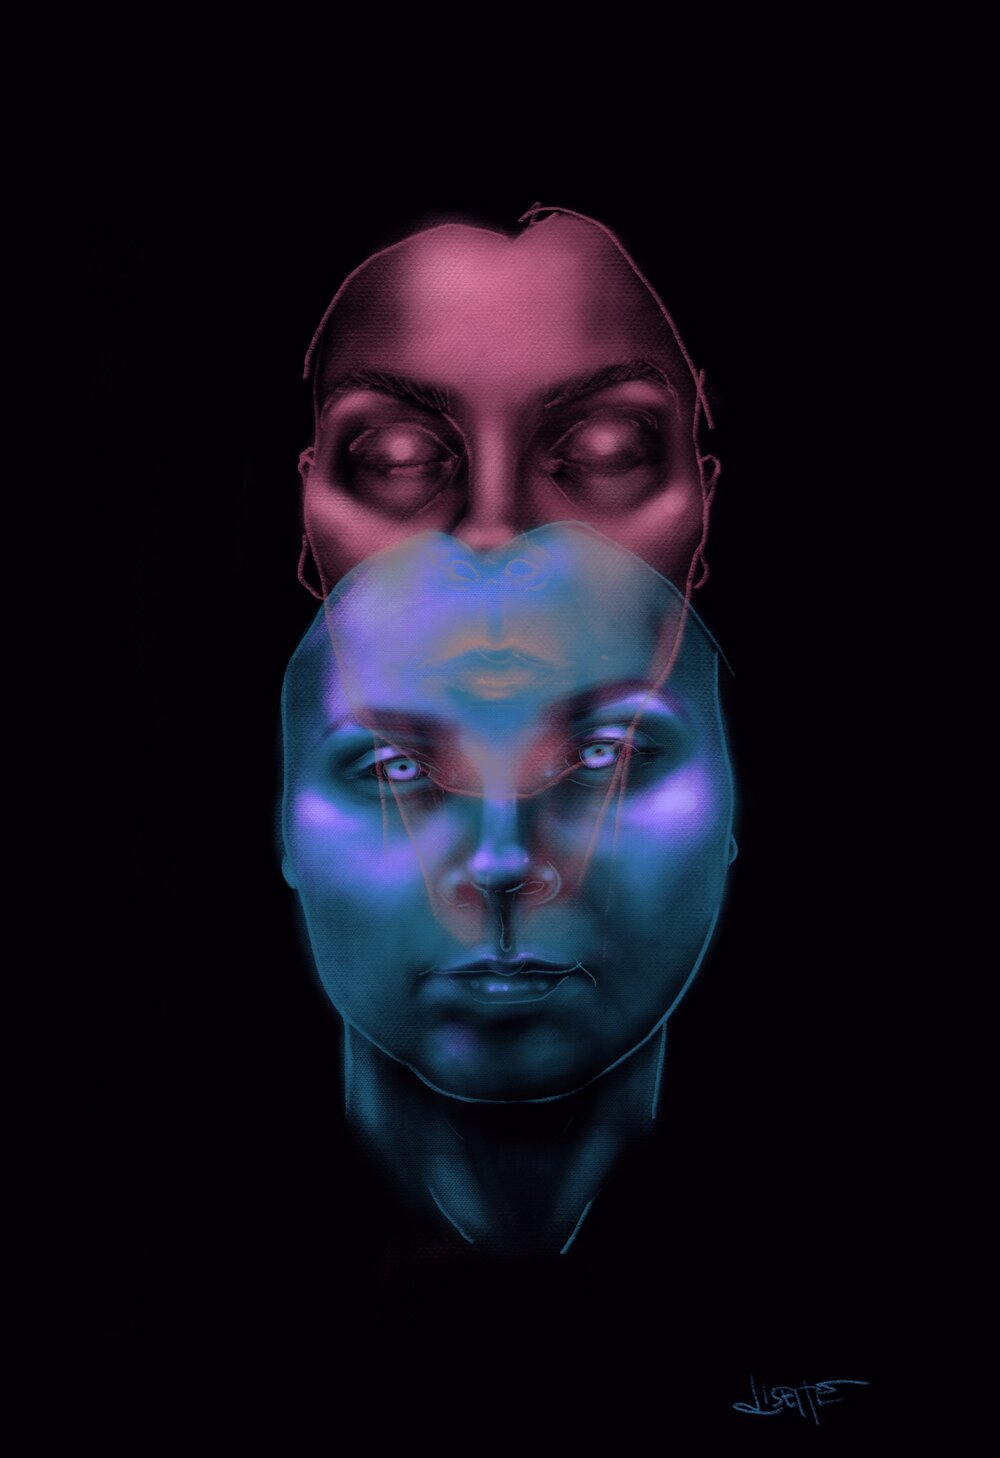 I Promist To Look Directly At You, Digital, 2018